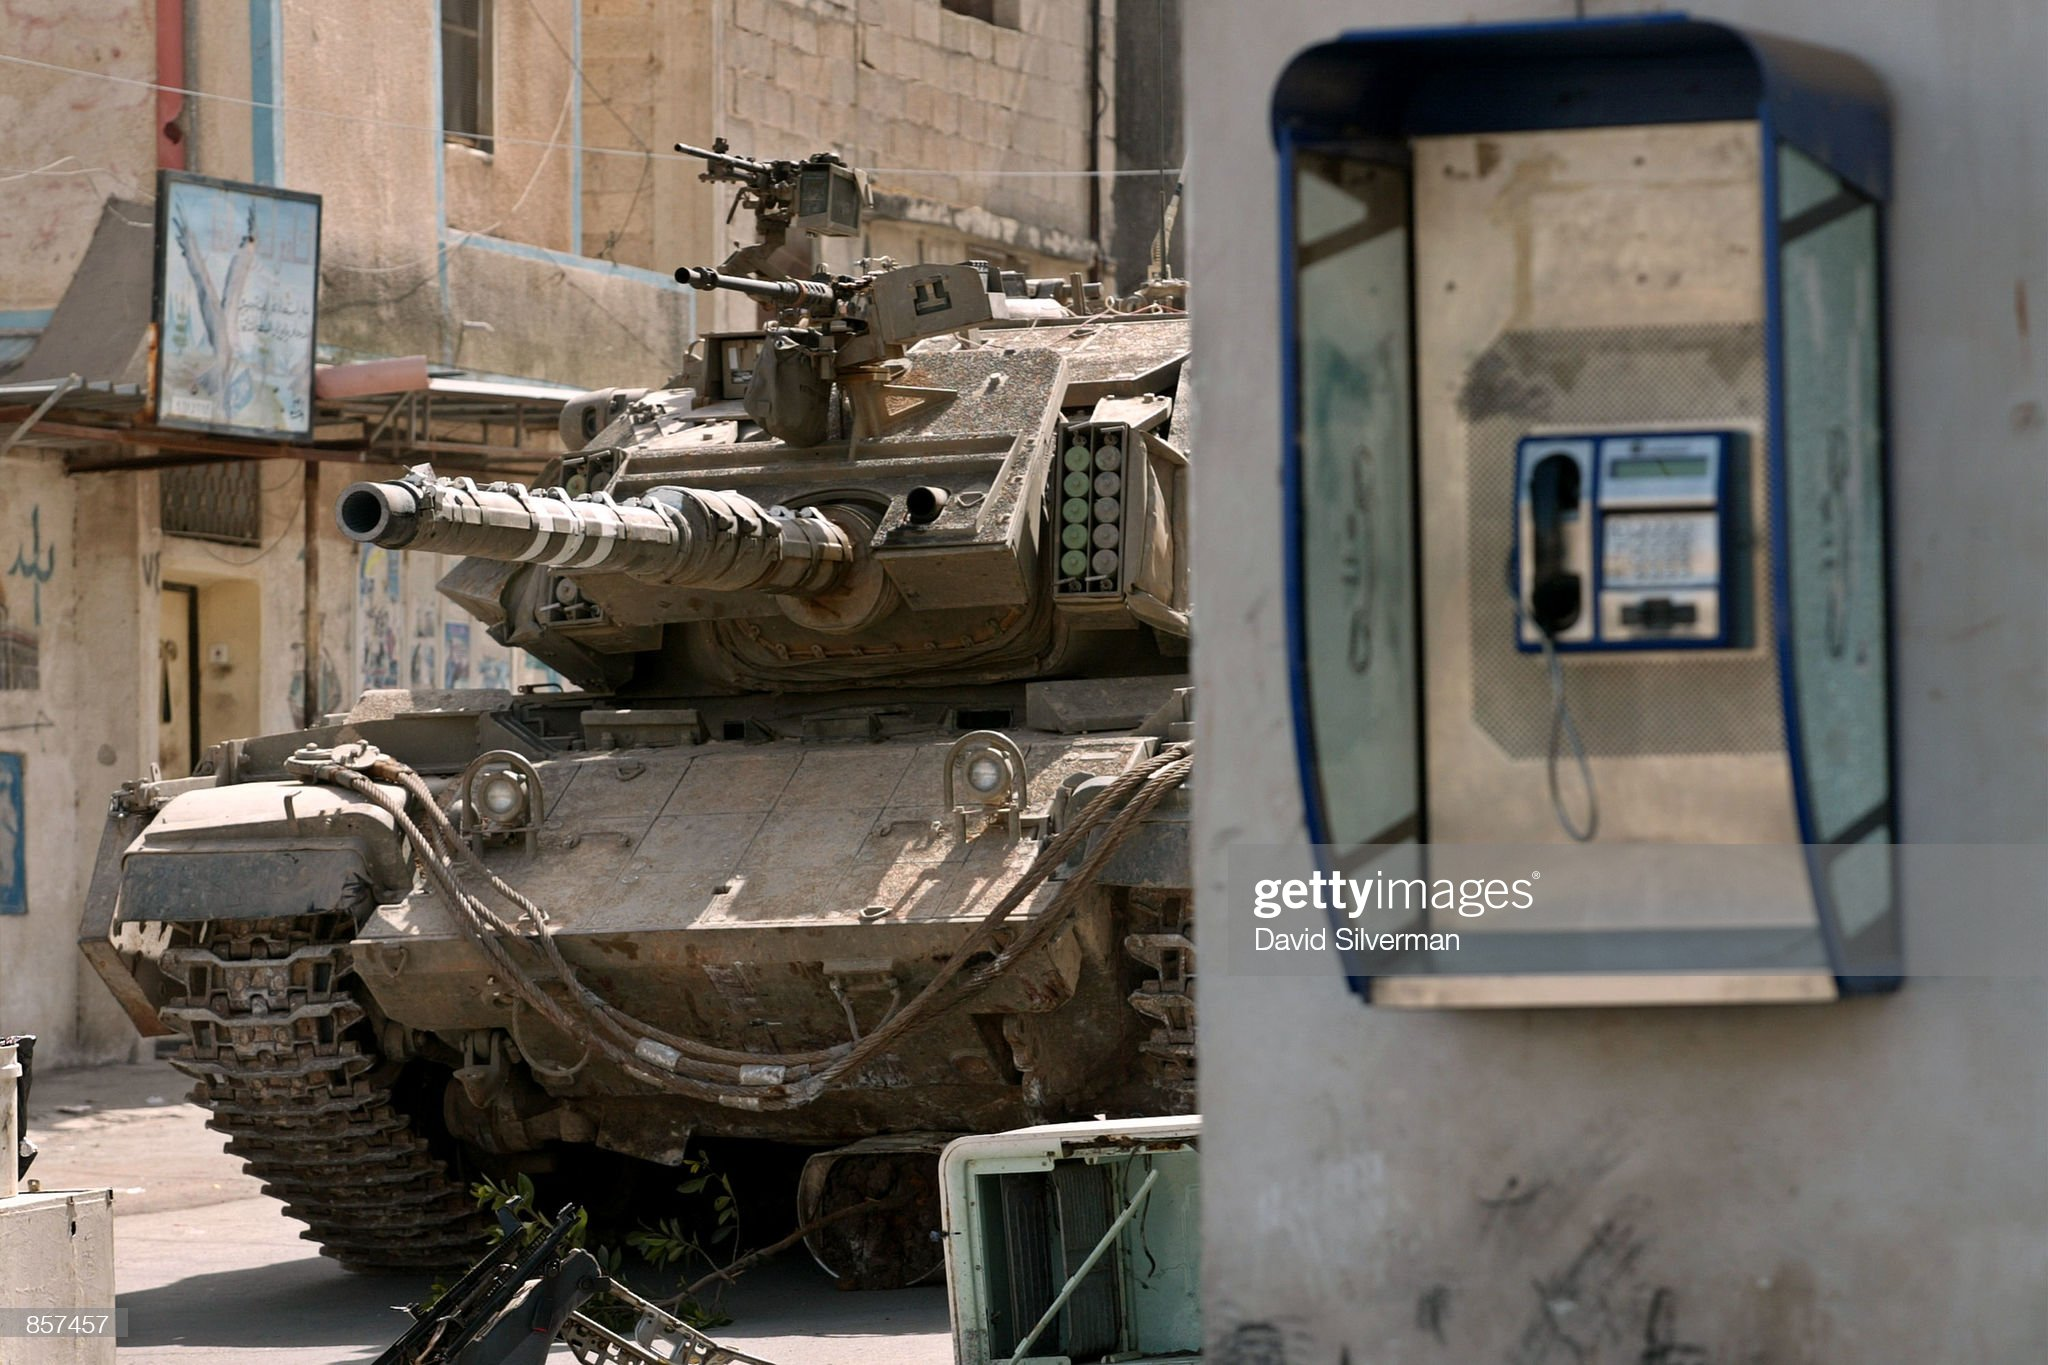 https://media.gettyimages.com/photos/an-israeli-army-tank-slowly-advances-march-7-2002-into-the-refugee-picture-id857457?s=2048x2048